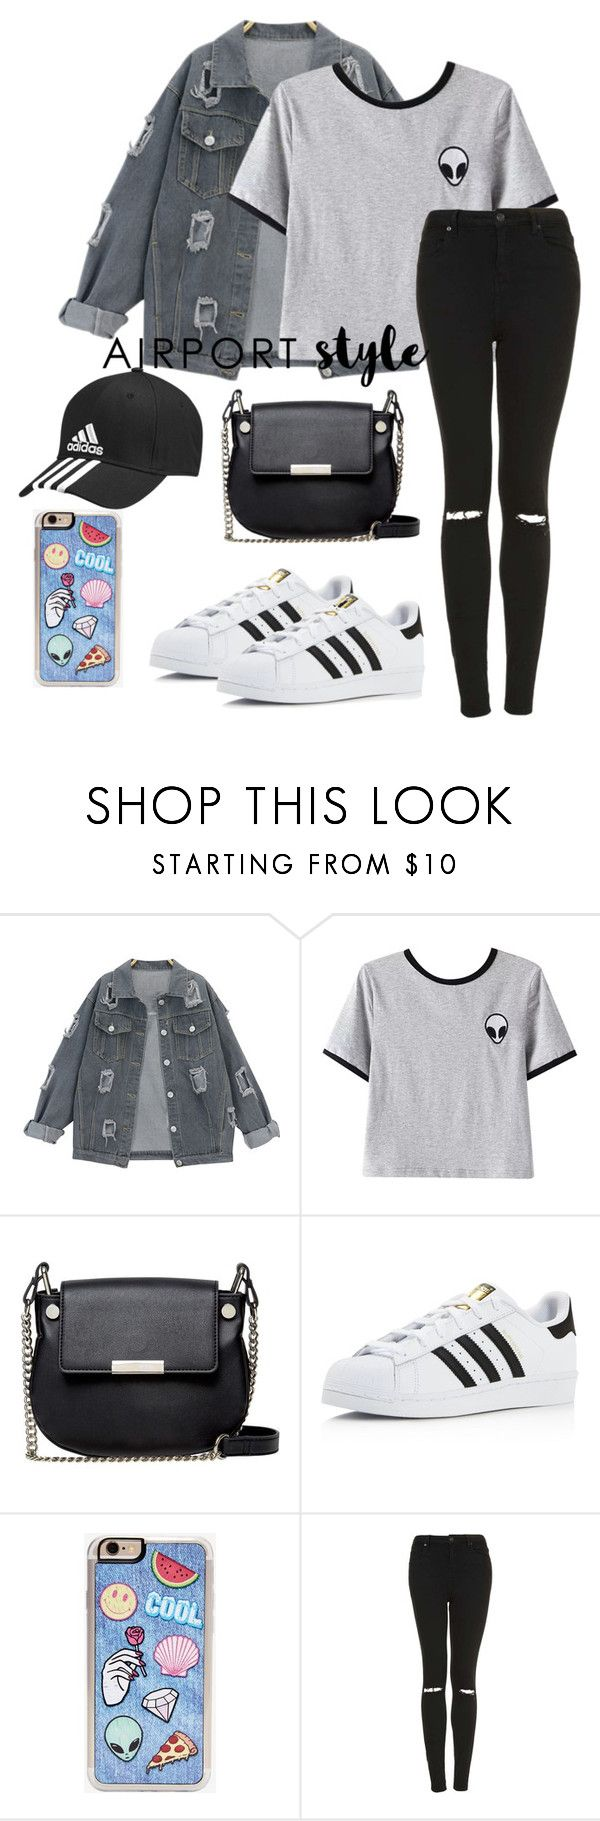 """Untitled #374"" by ec2049 ❤ liked on Polyvore featuring Chicnova Fashion, French Connection, adidas, Zero Gravity and Topshop"